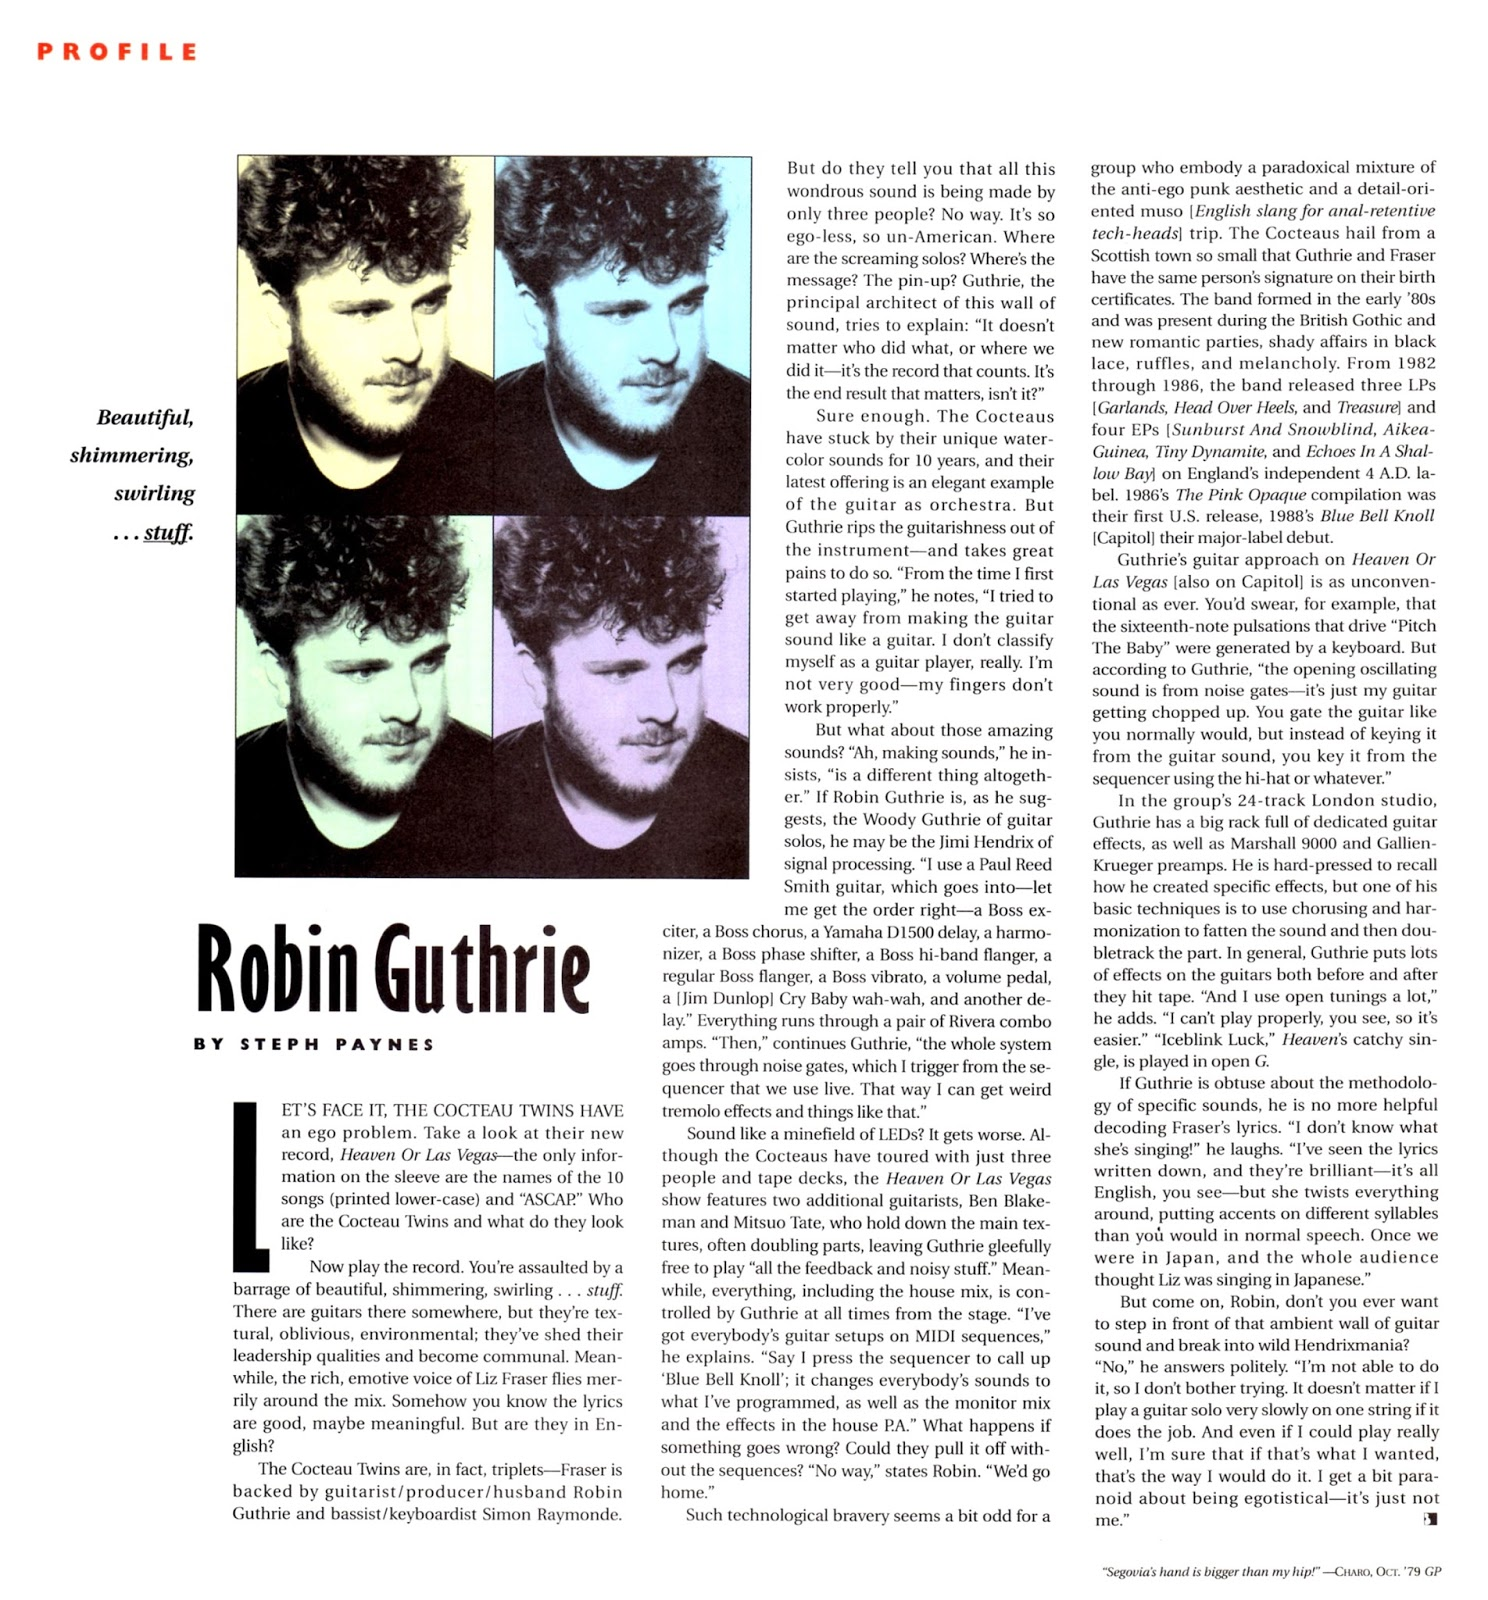 Profile: Robin Guthrie